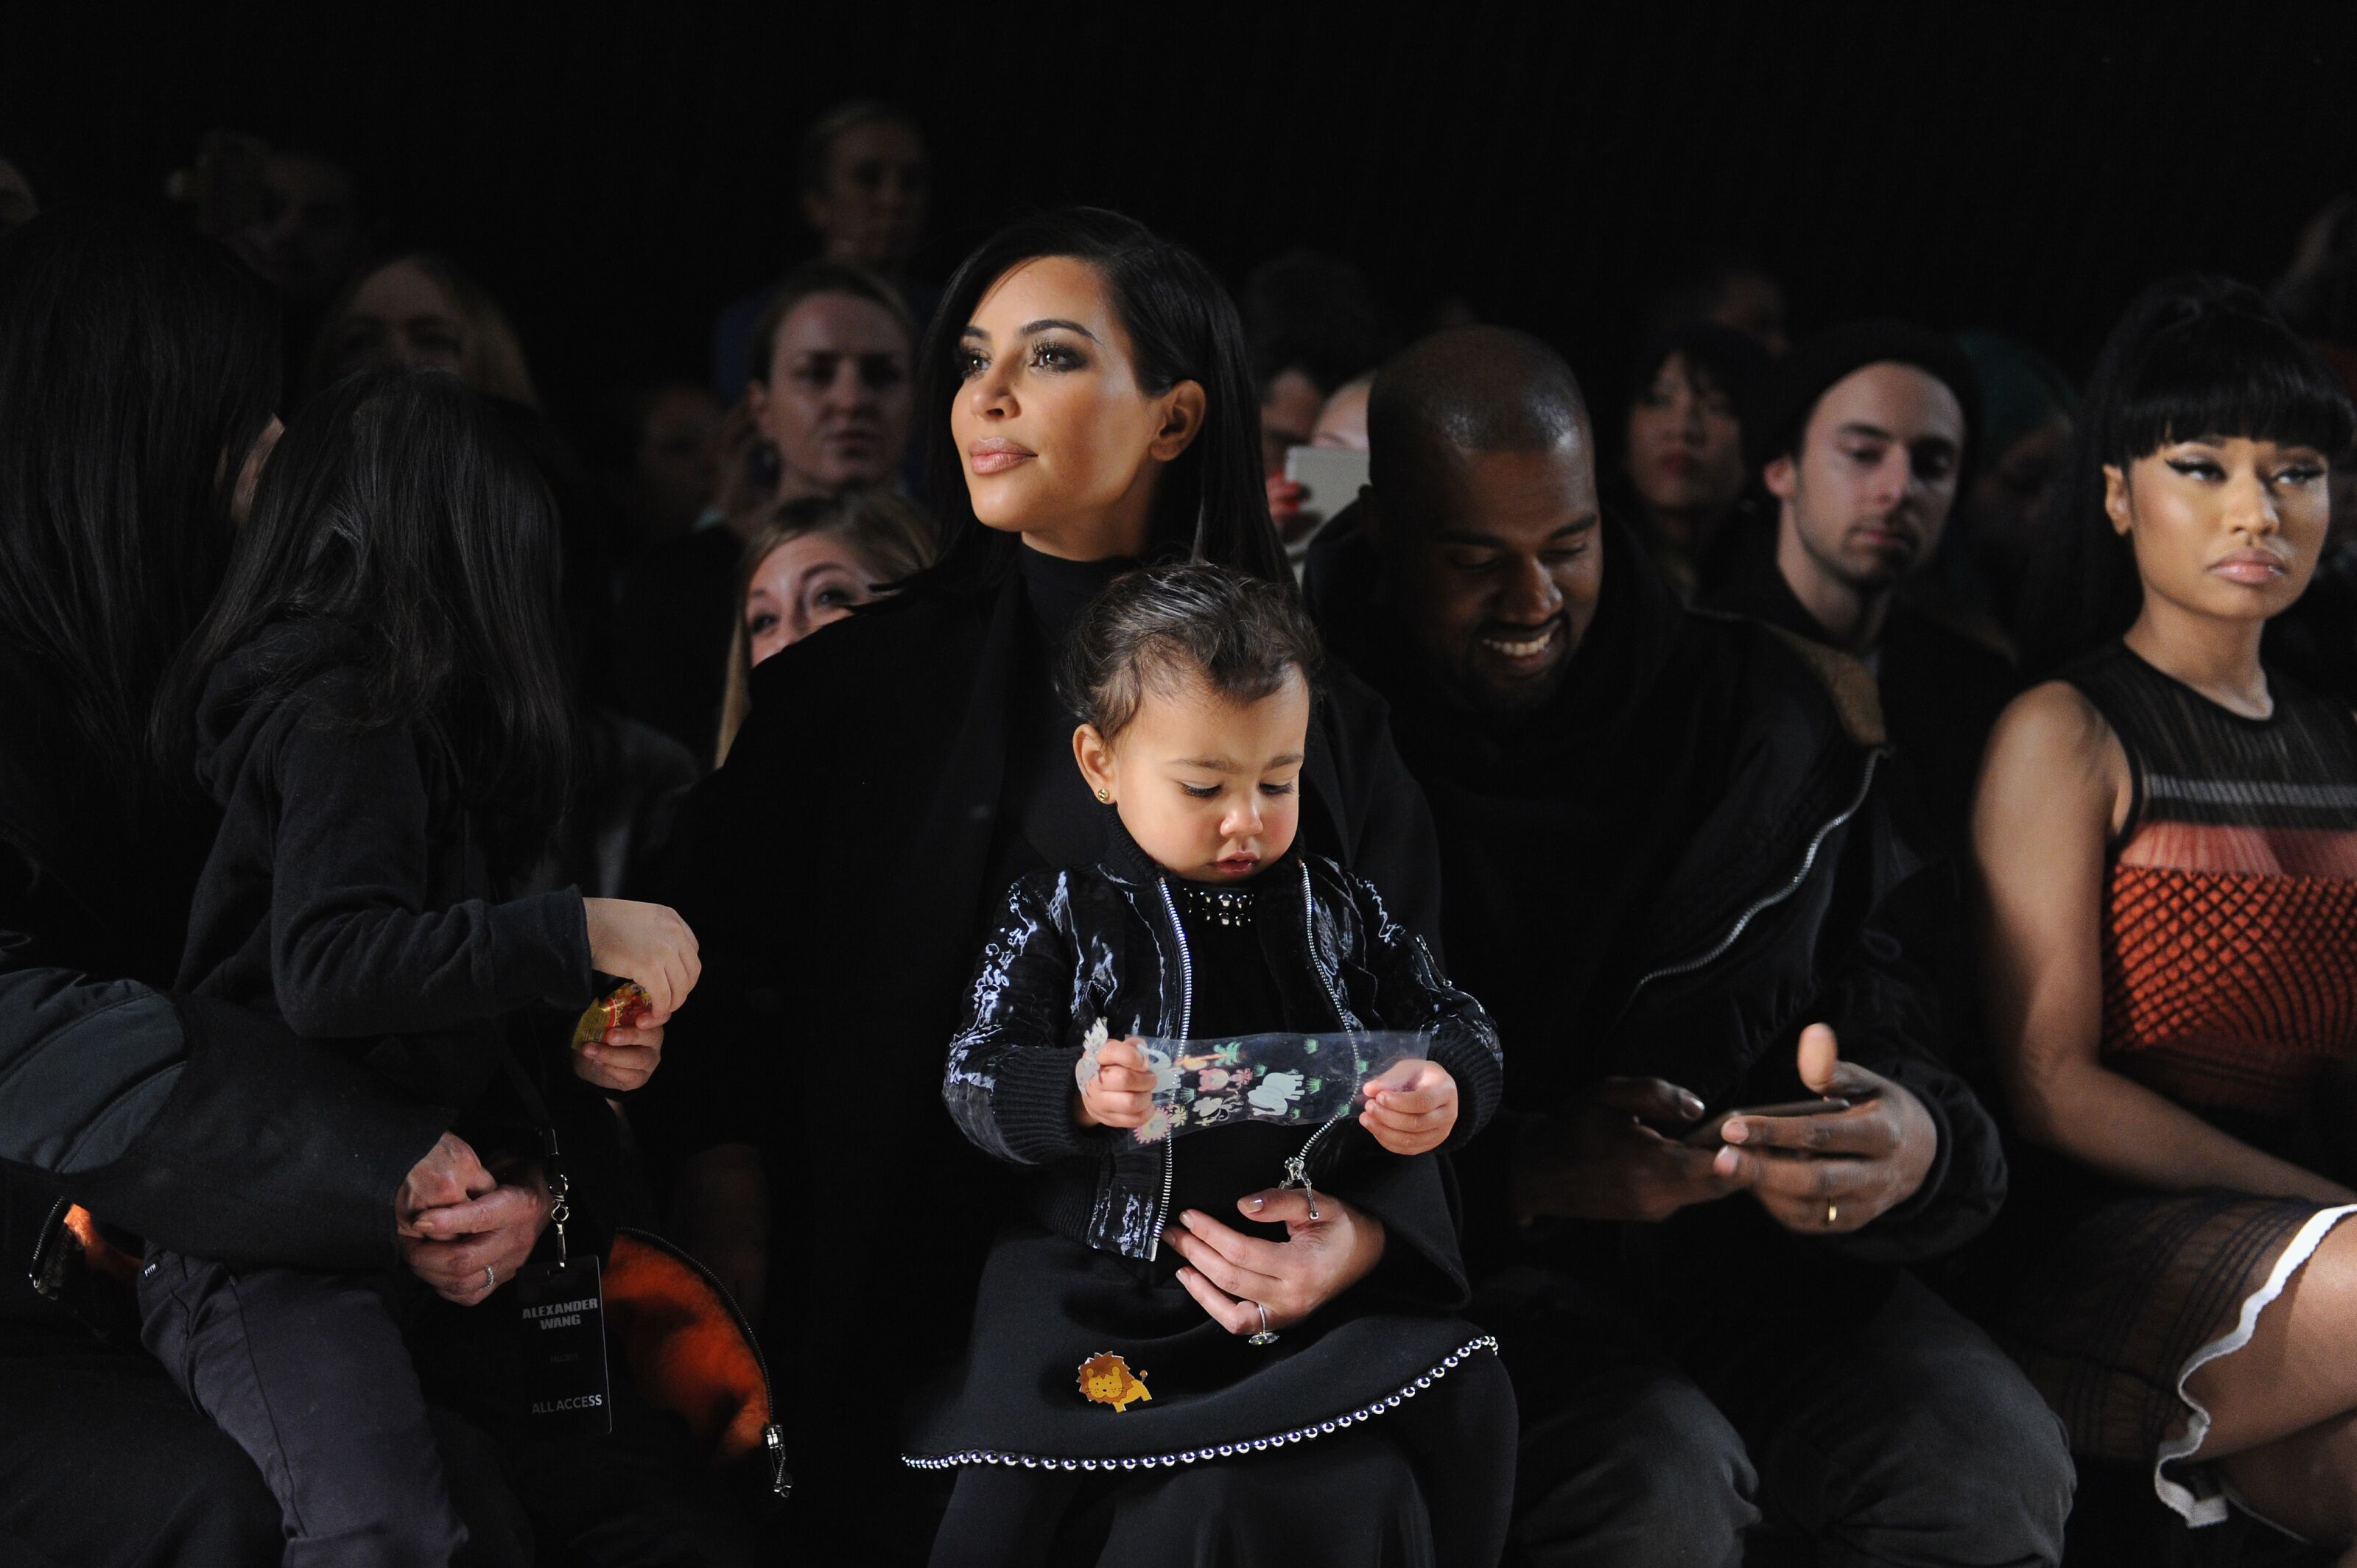 NEW YORK, NY - FEBRUARY 14: (L-R) Kim Kardashian, North West, Kanye West and Nicki Minaj attend the Alexander Wang Fashion Show during Mercedes-Benz Fashion Week Fall 2015 at Pier 94 on February 14, 2015 in New York City. (Photo by Craig Barritt/Getty Images)